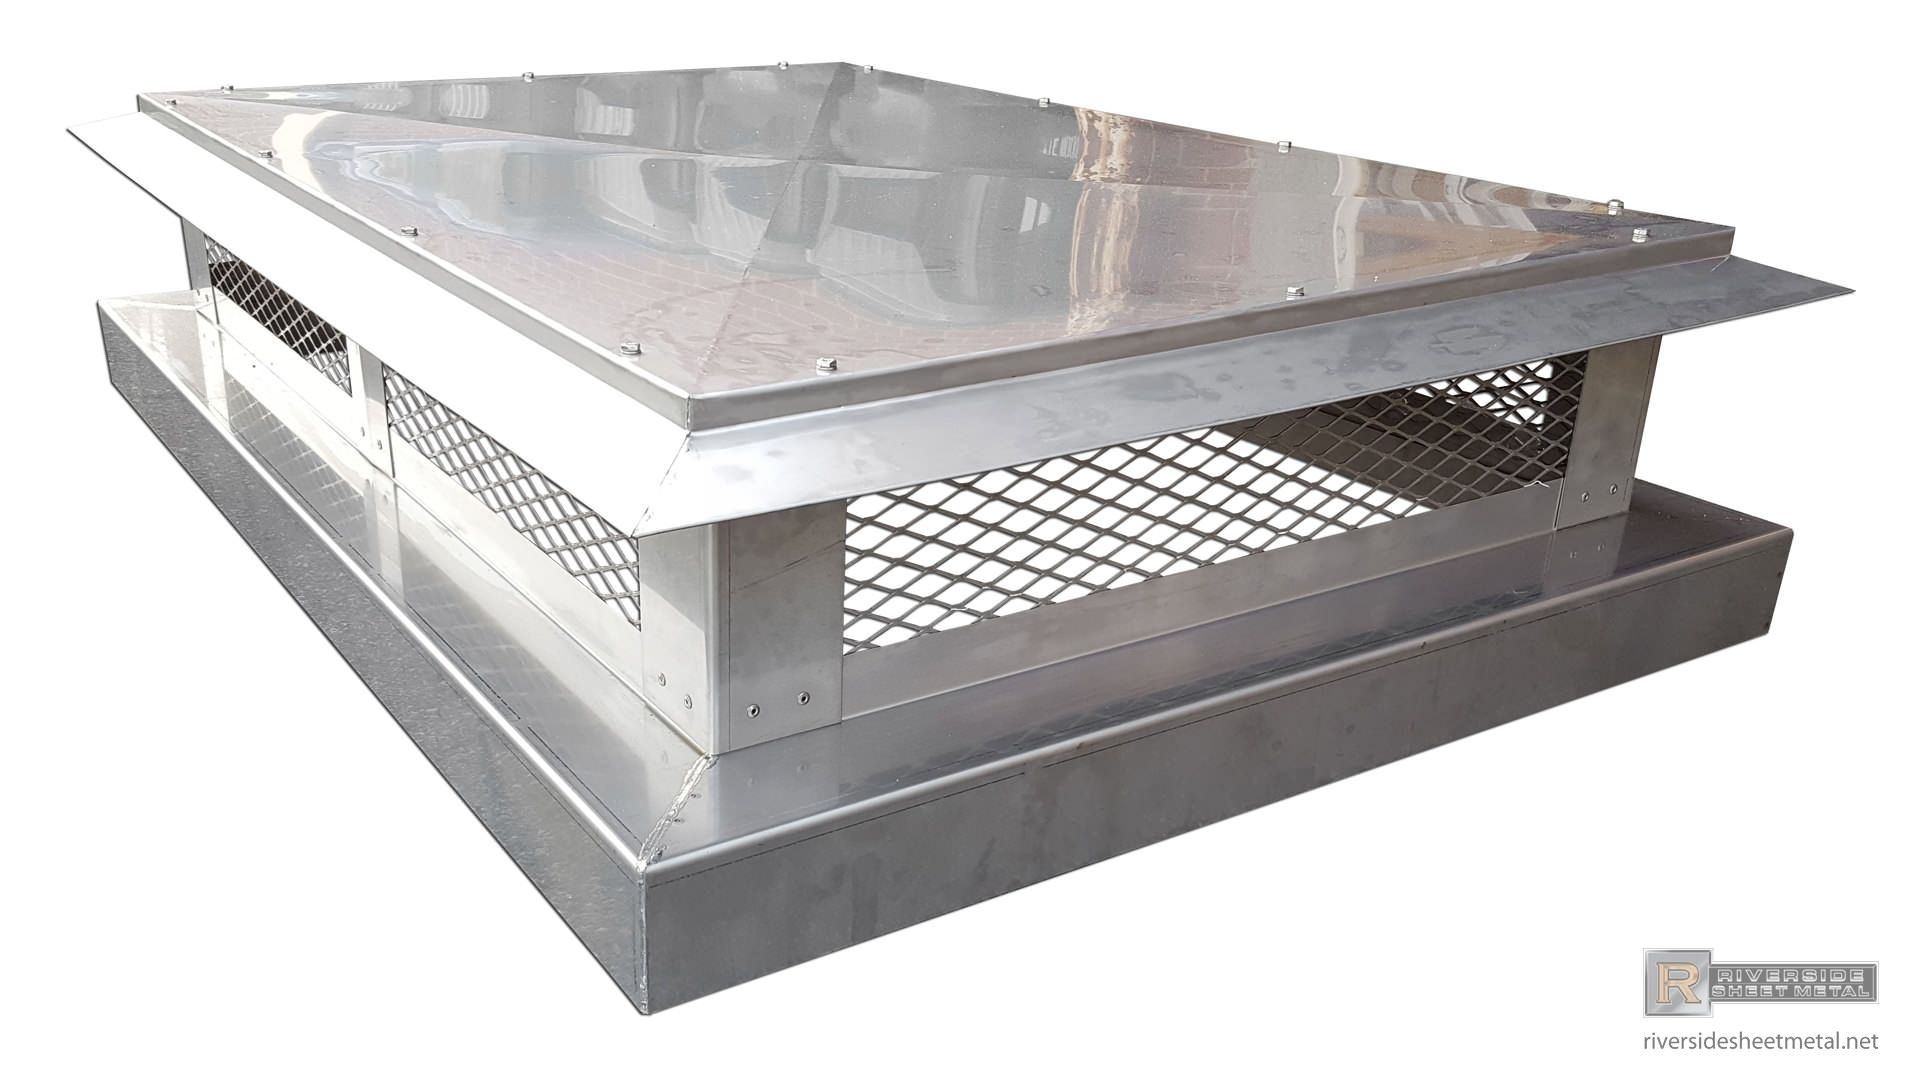 Stainless Steel Chimney Cap With Angled Detailed Roof Ch001 Chimney Cap Metal Roofing Prices Roof Cap